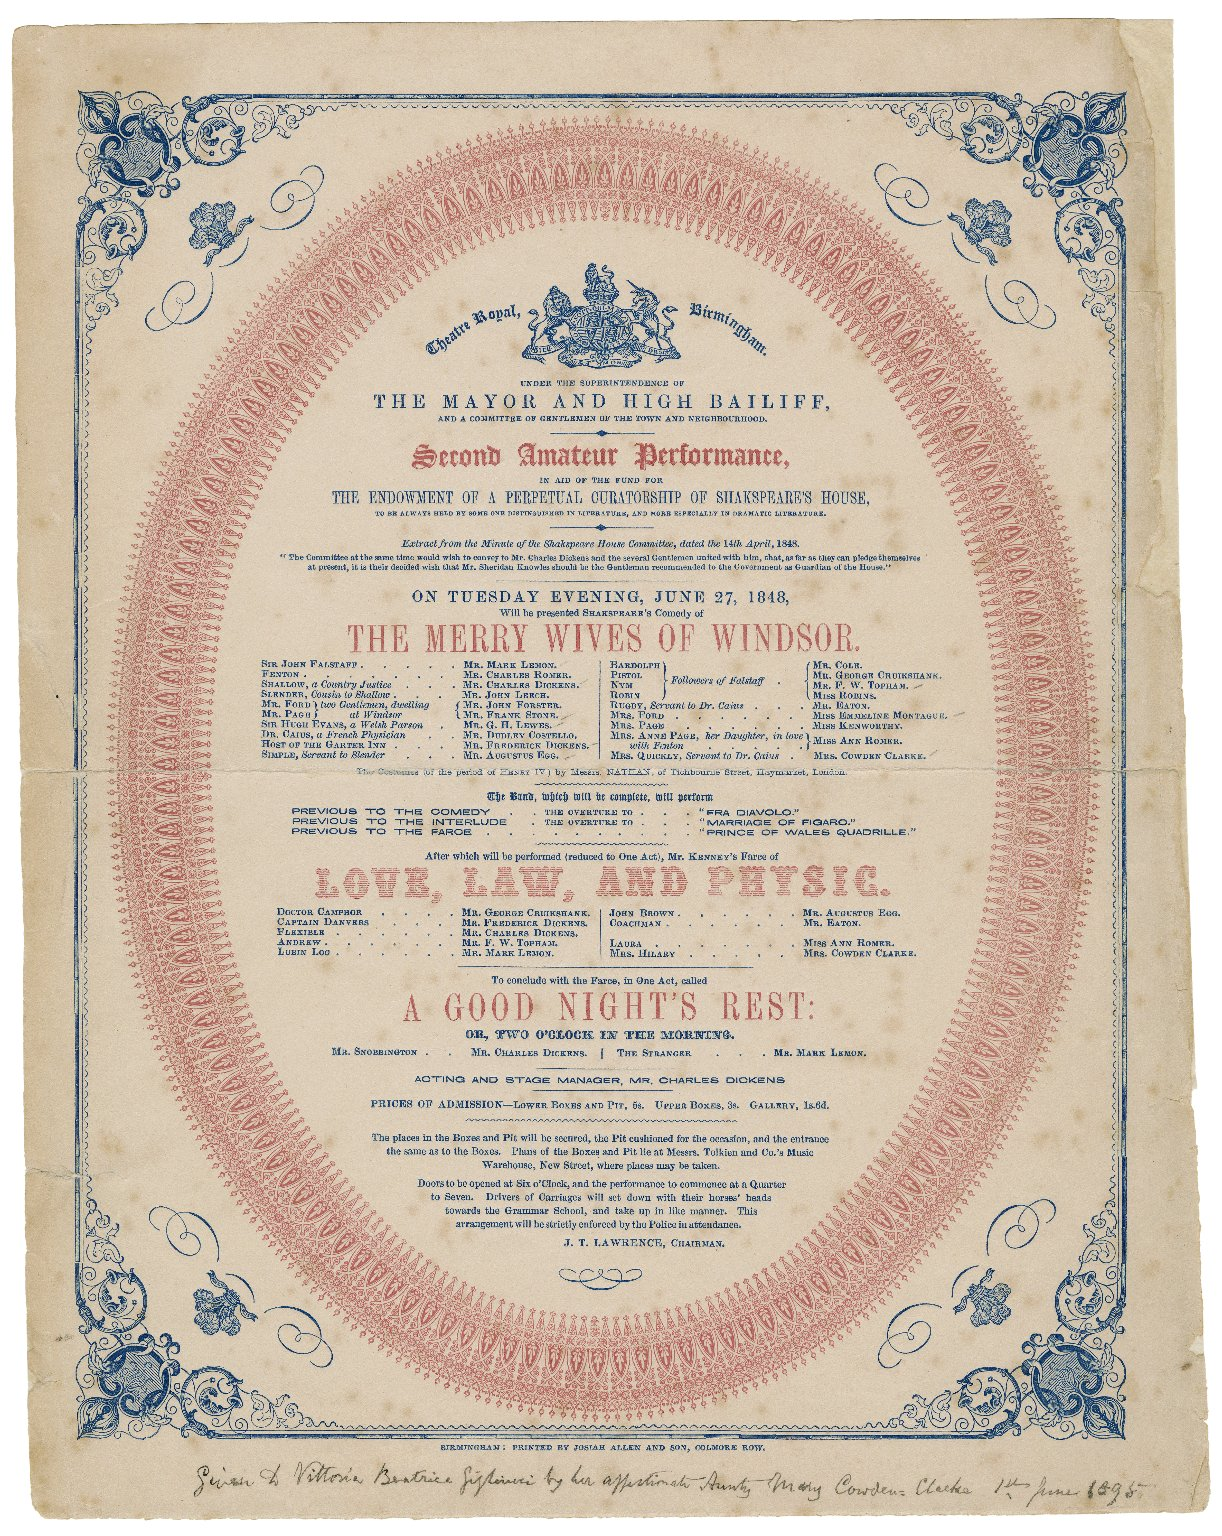 <b>Birmingham playbill, 1848</b>     	</br>A playbill from the Theatre Royal in Birmingham, England similar to the many playbills advertising Aldridge?s performances, 1848</br><br/><b>Source: </b><i>Theatre Royal, Birmingham [playbill] (Call number: PLAYBILL 265072), 1848, Folger Digital Image Collection, University of Cincinnati Libraries Digital Collections, University of Cincinnati, http://digproj.libraries.uc.edu:8180/luna/servlet/s/2ubost</i>